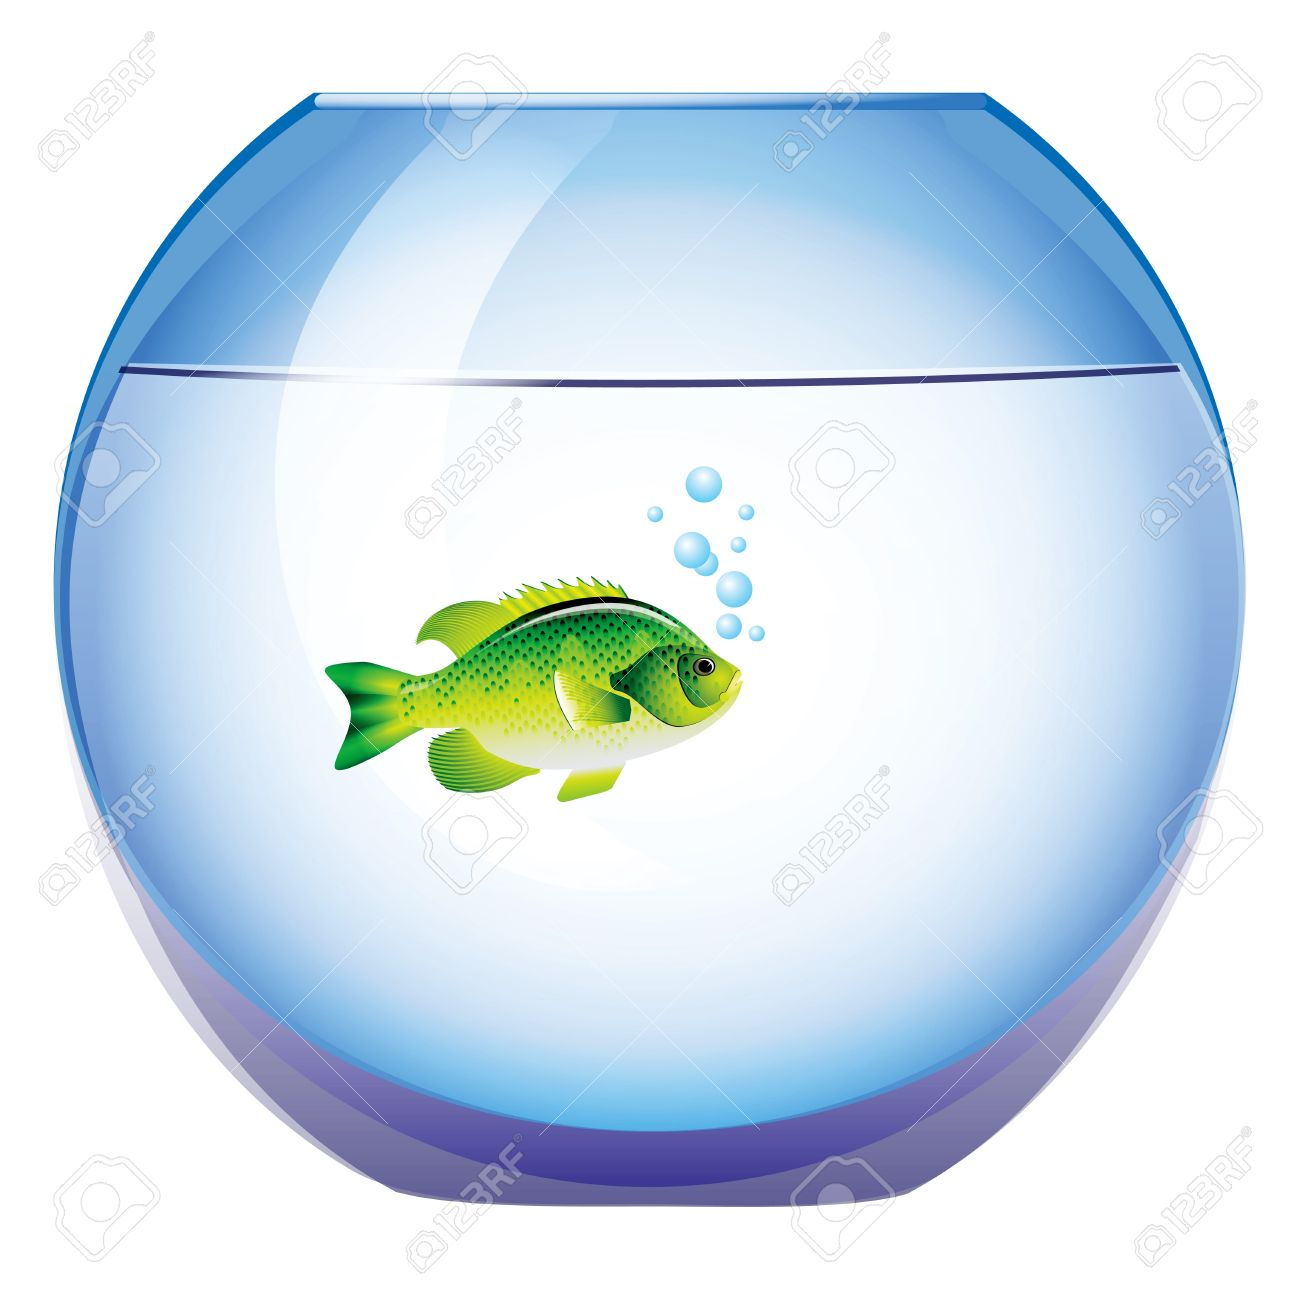 Round Aquarium With A Fish Vector Illustration Royalty Free